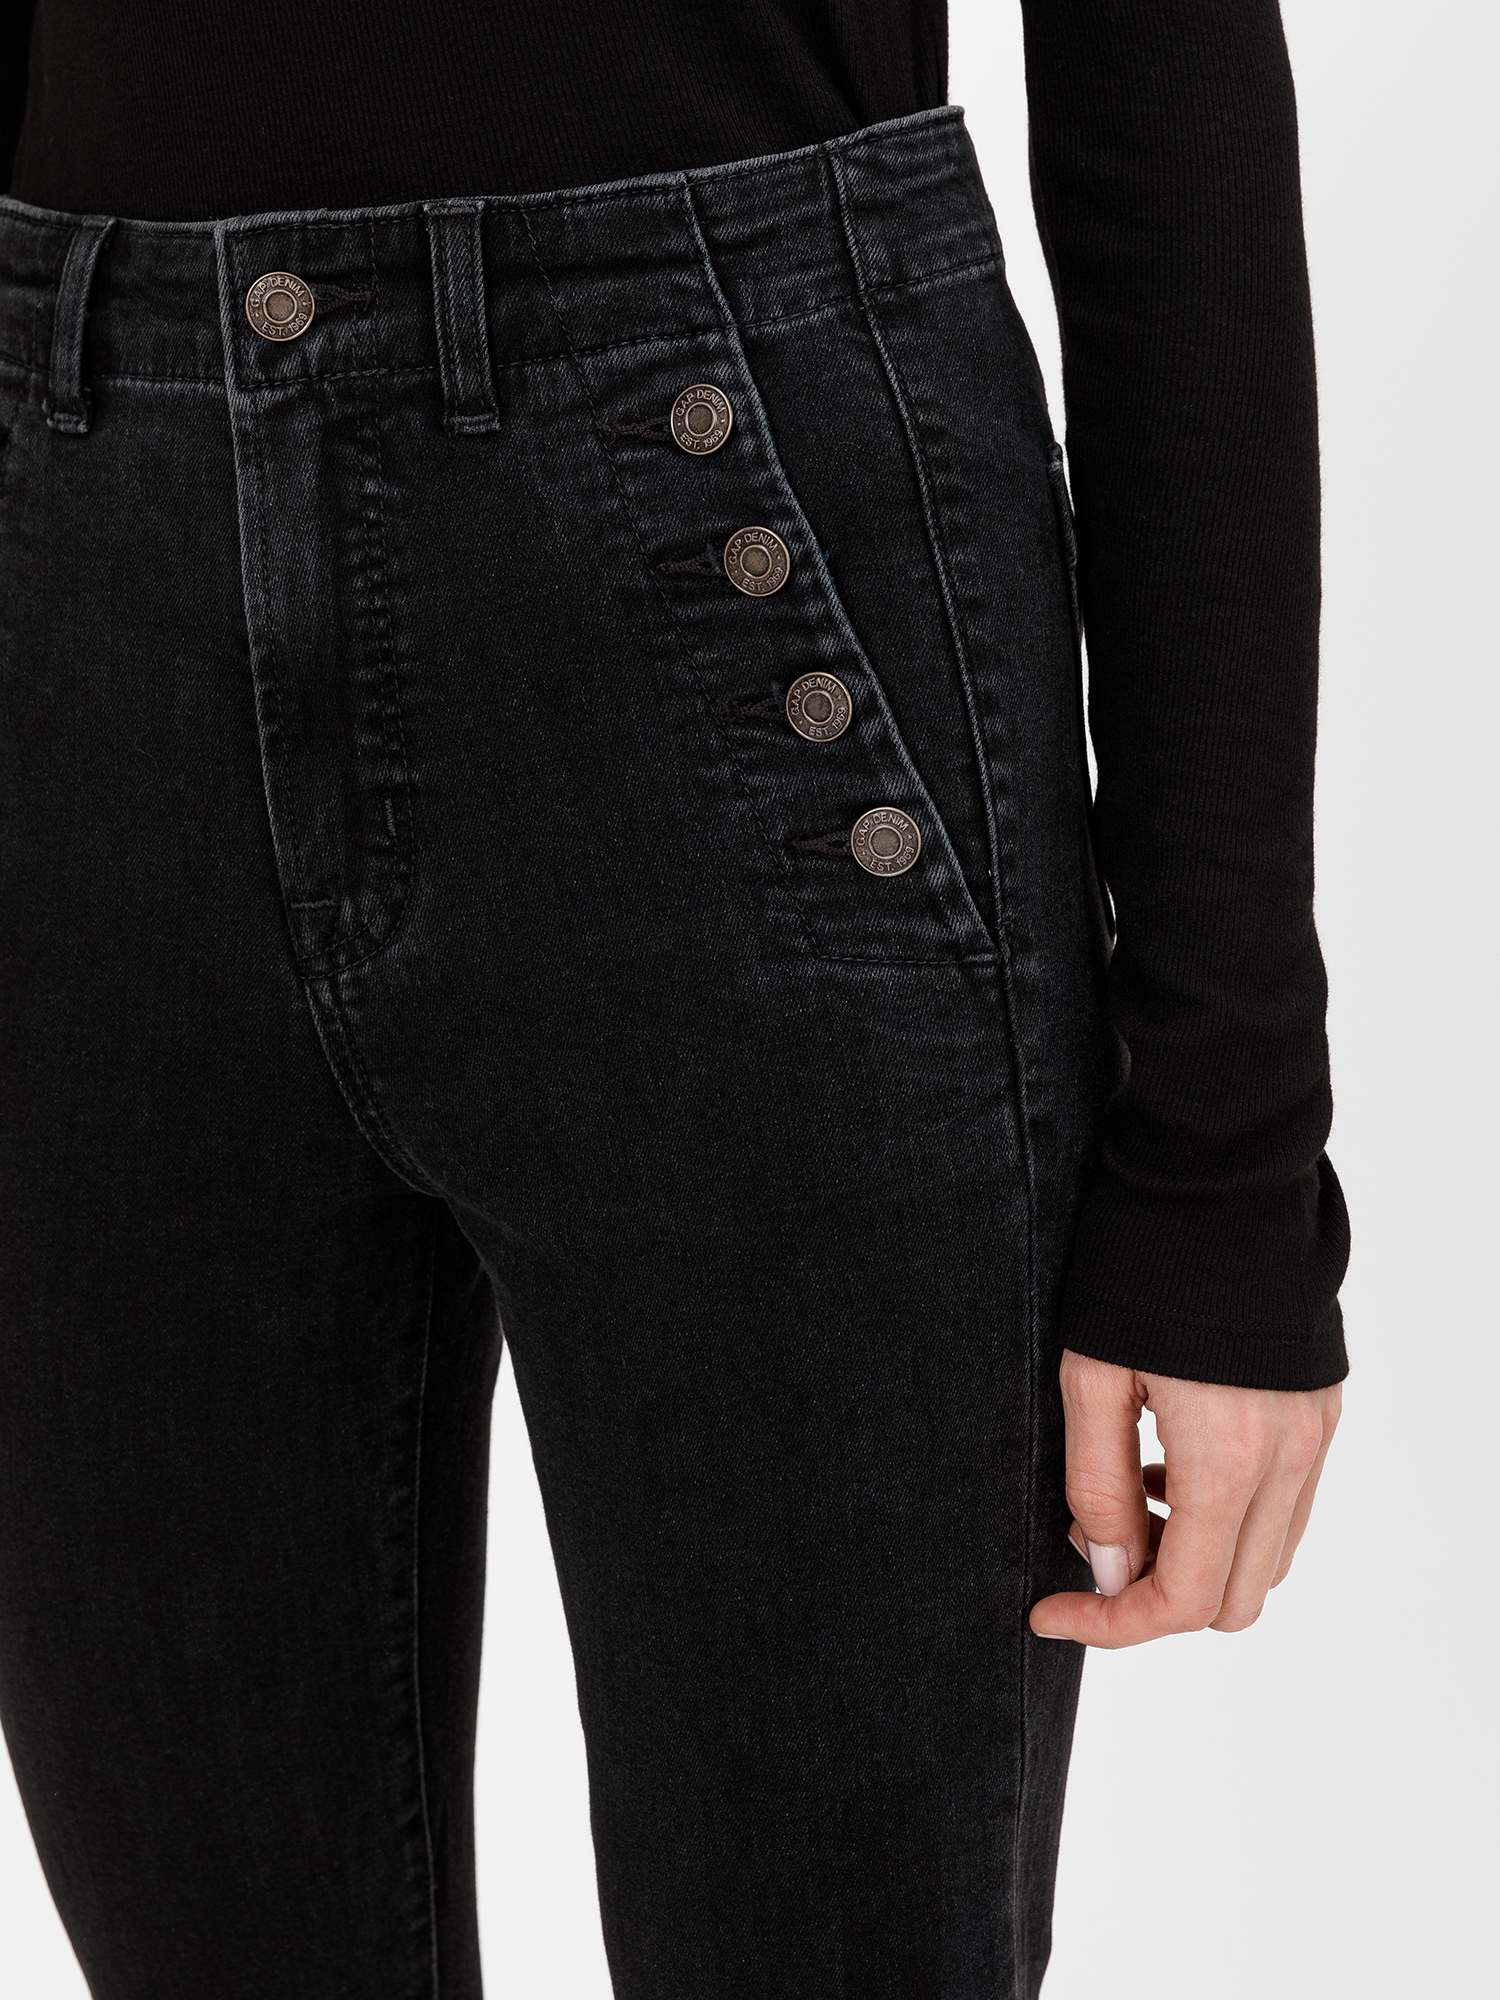 Džínsy high rise true skinny with secret smoothing pockets (4)